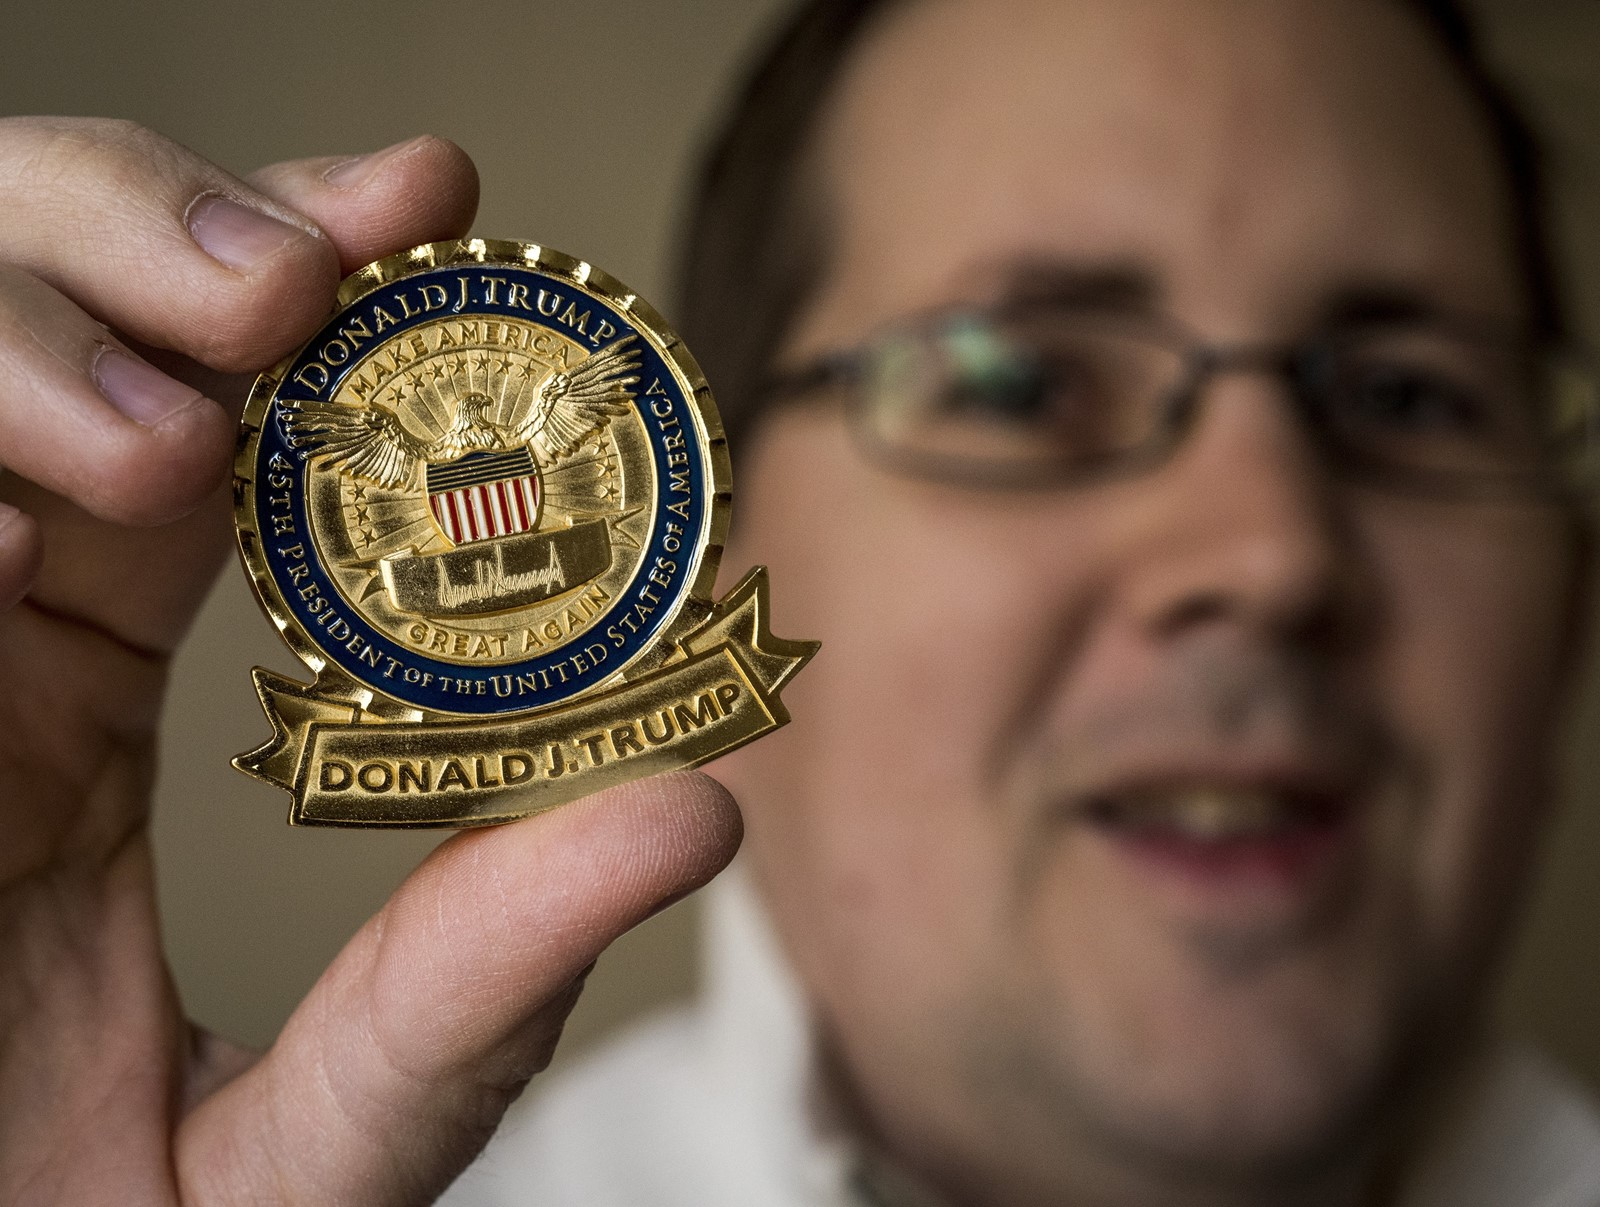 Trump's presidential coin breaks the mold - West